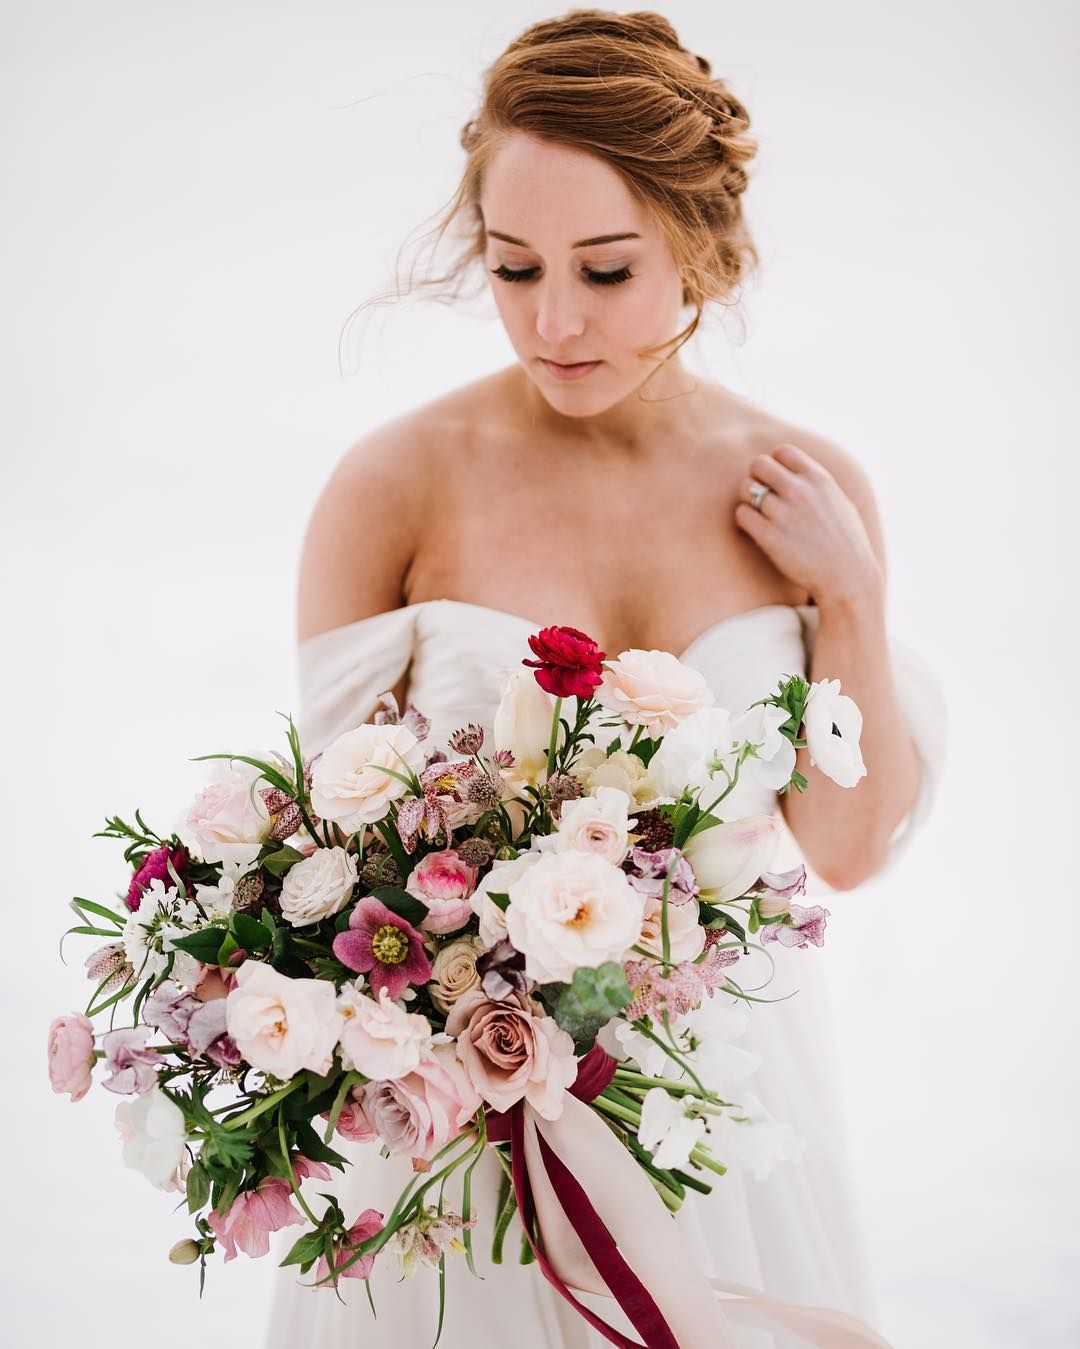 Winter bridal bouquet Sweet Annie Floral Design Photo: Annmarie Swift Photography